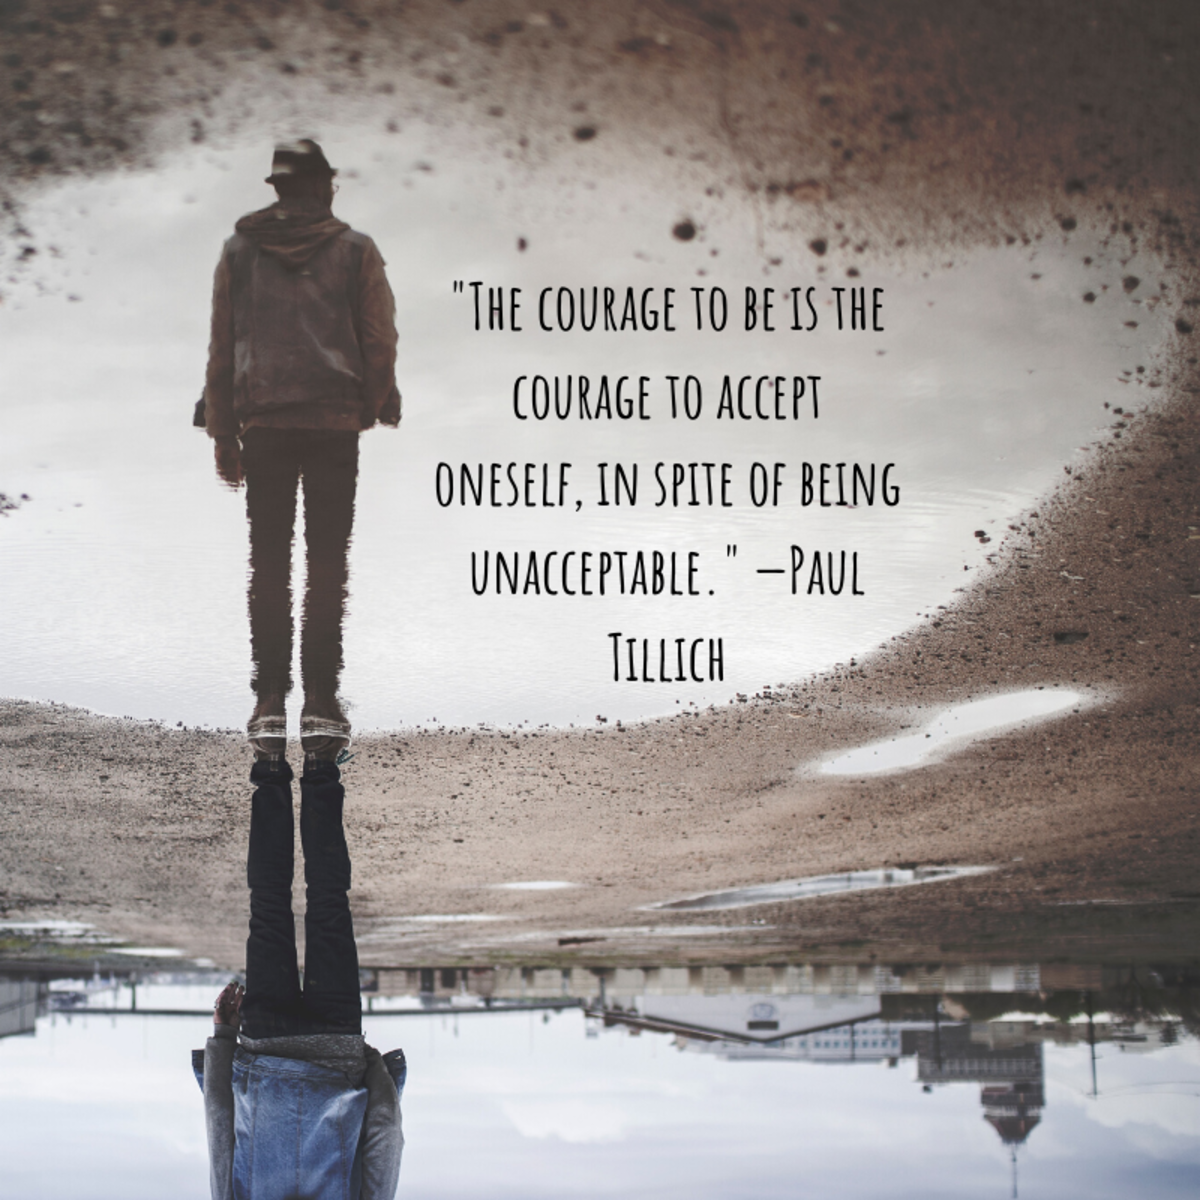 """The courage to be is the courage to accept oneself, in spite of being unacceptable."" —Paul Tillich"